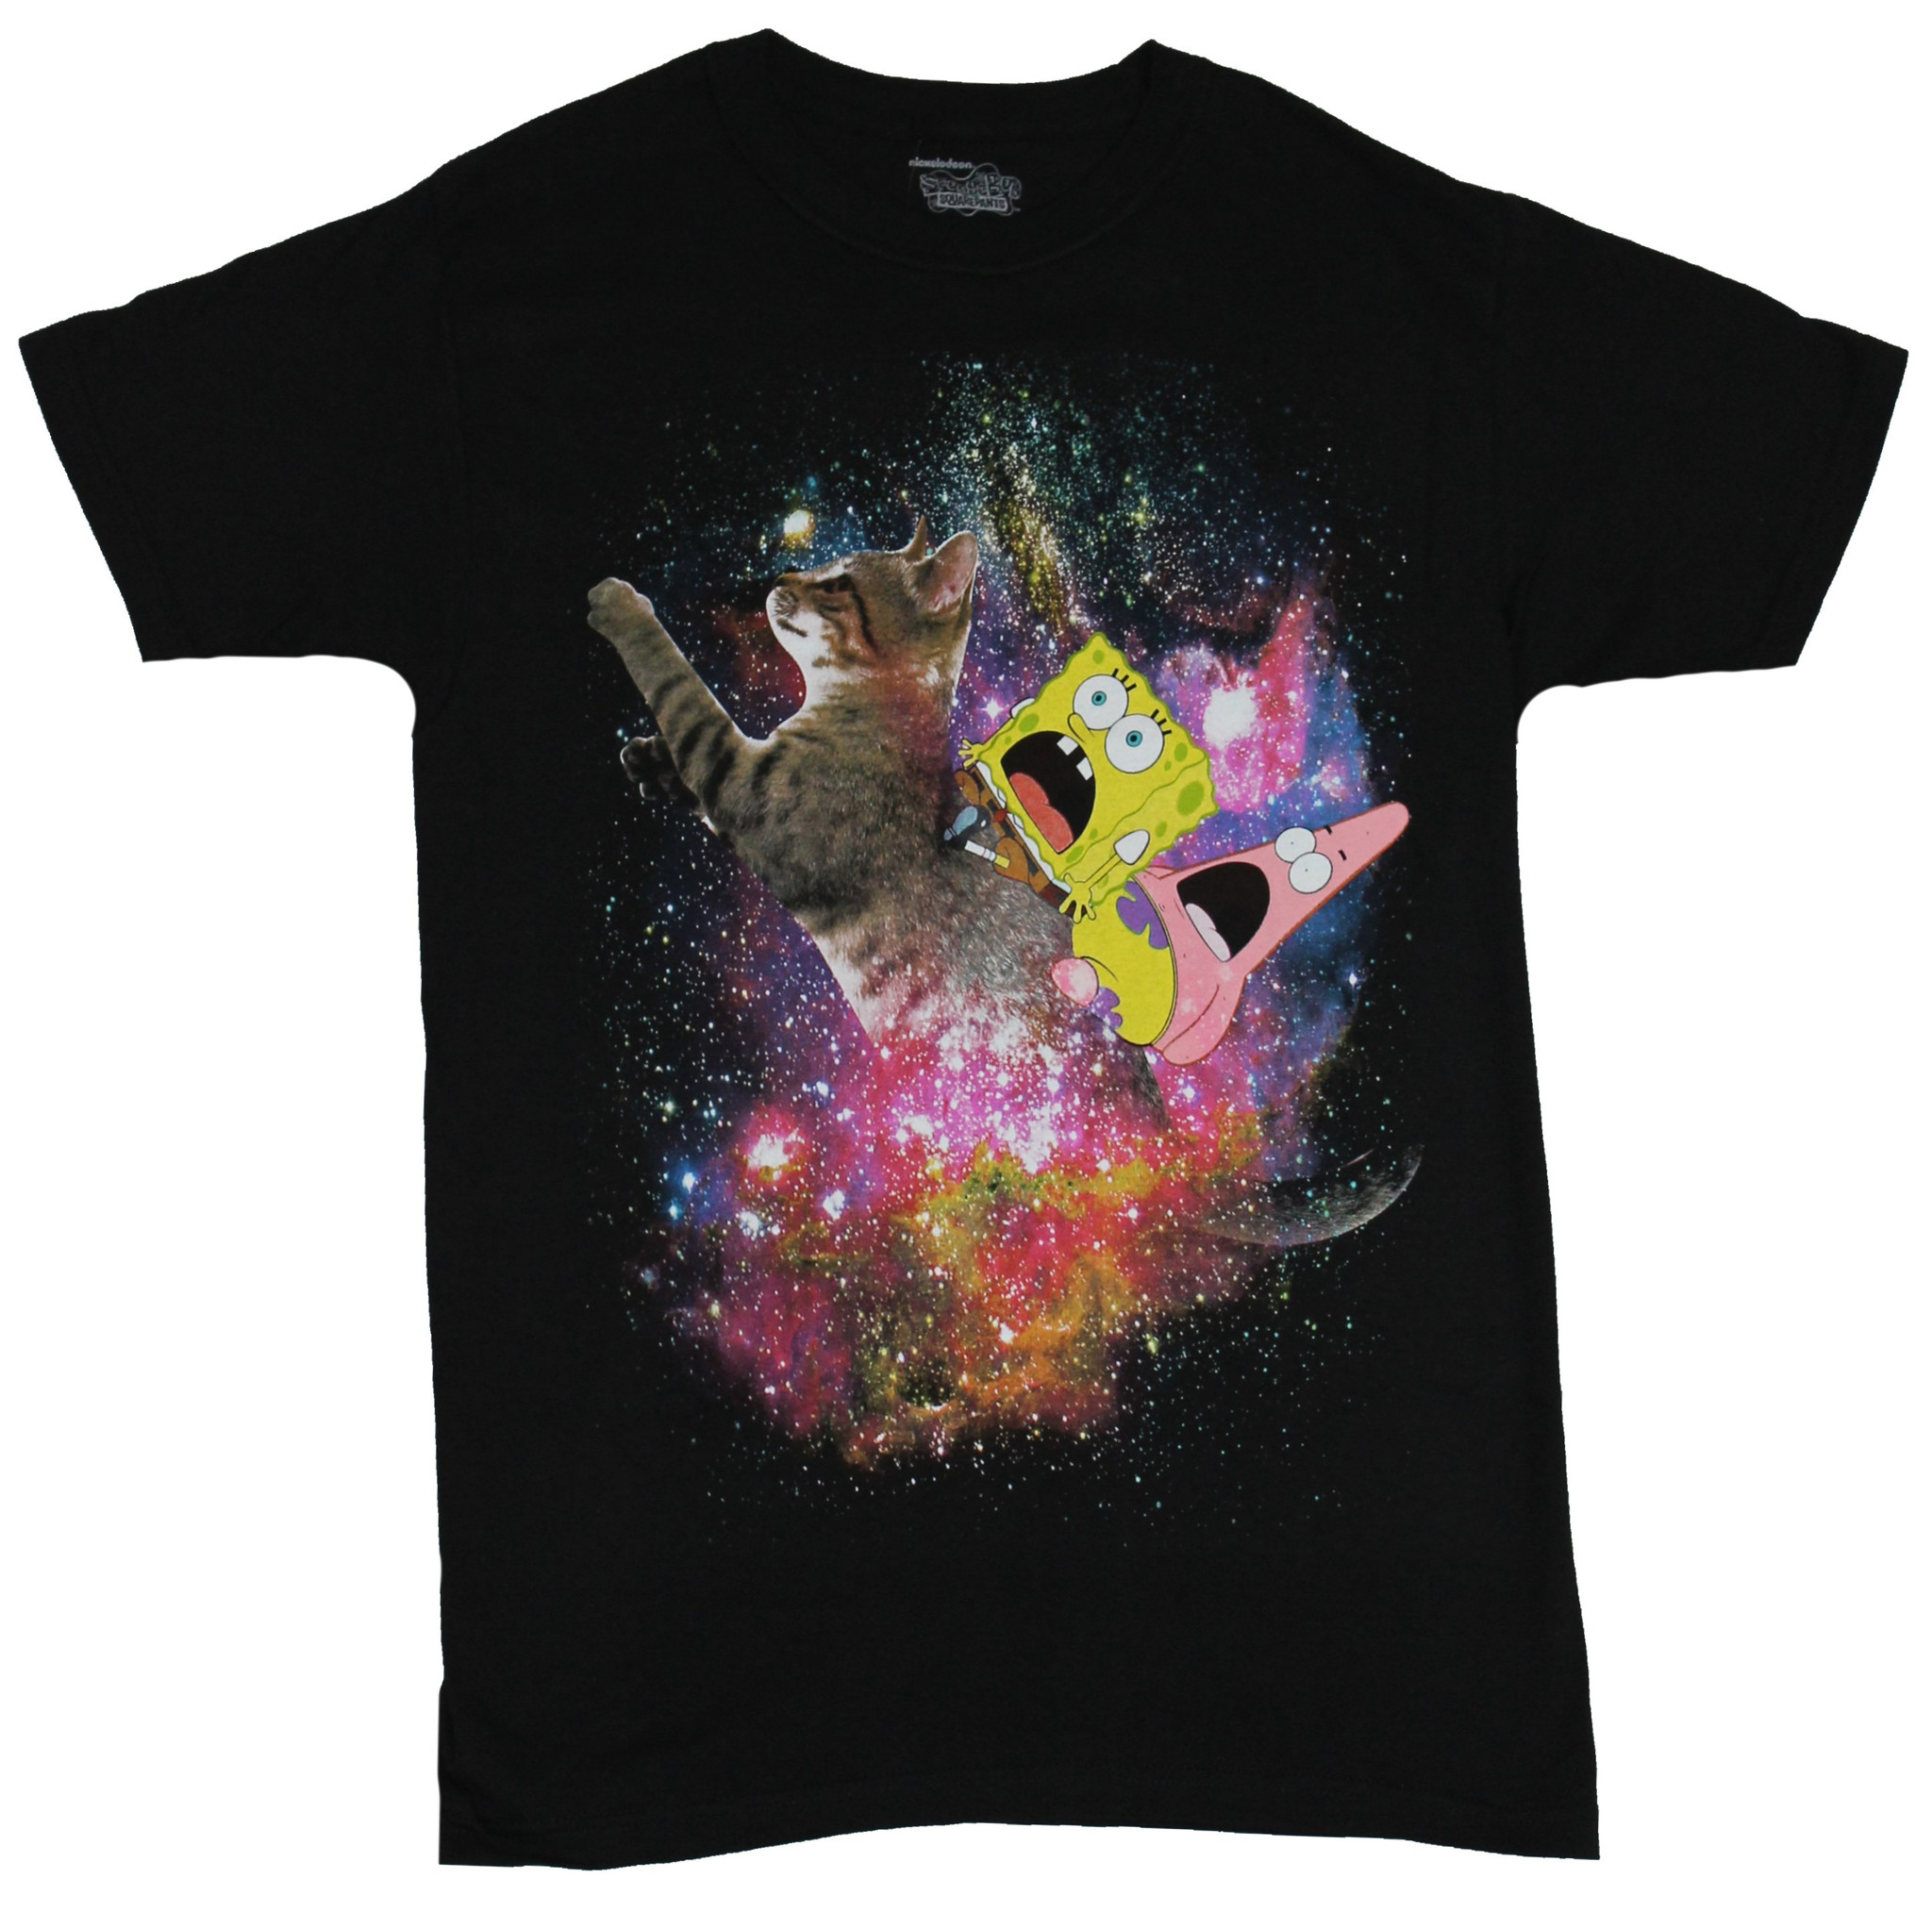 Spongebob Squarepants Mens T-shirt - Bob & Squidward Cat Rid Through Space Image